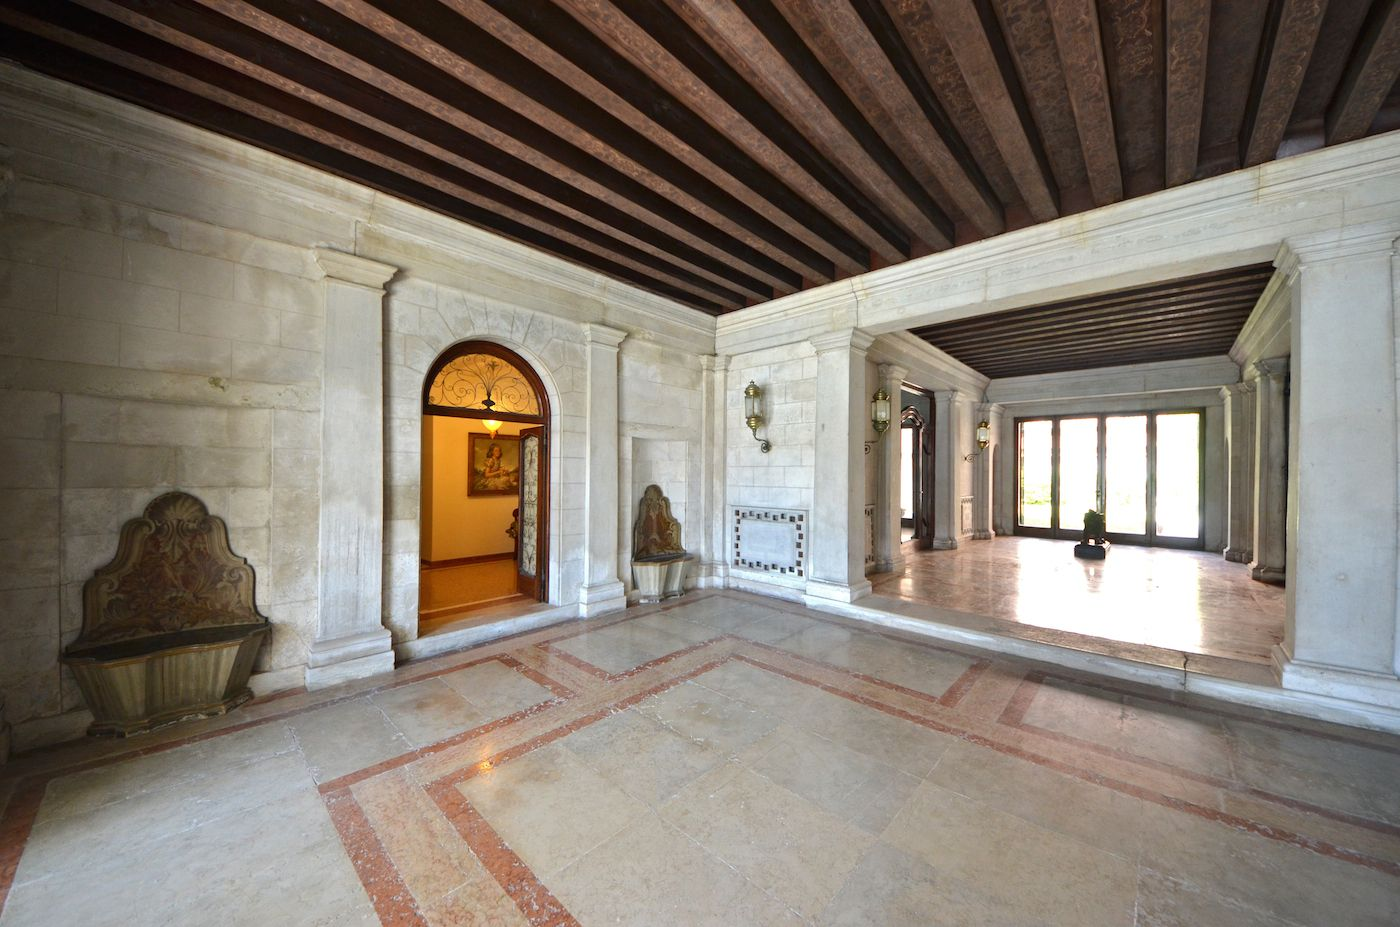 from the water front through th entrance hall of the Palace to the Dogaressa apartment